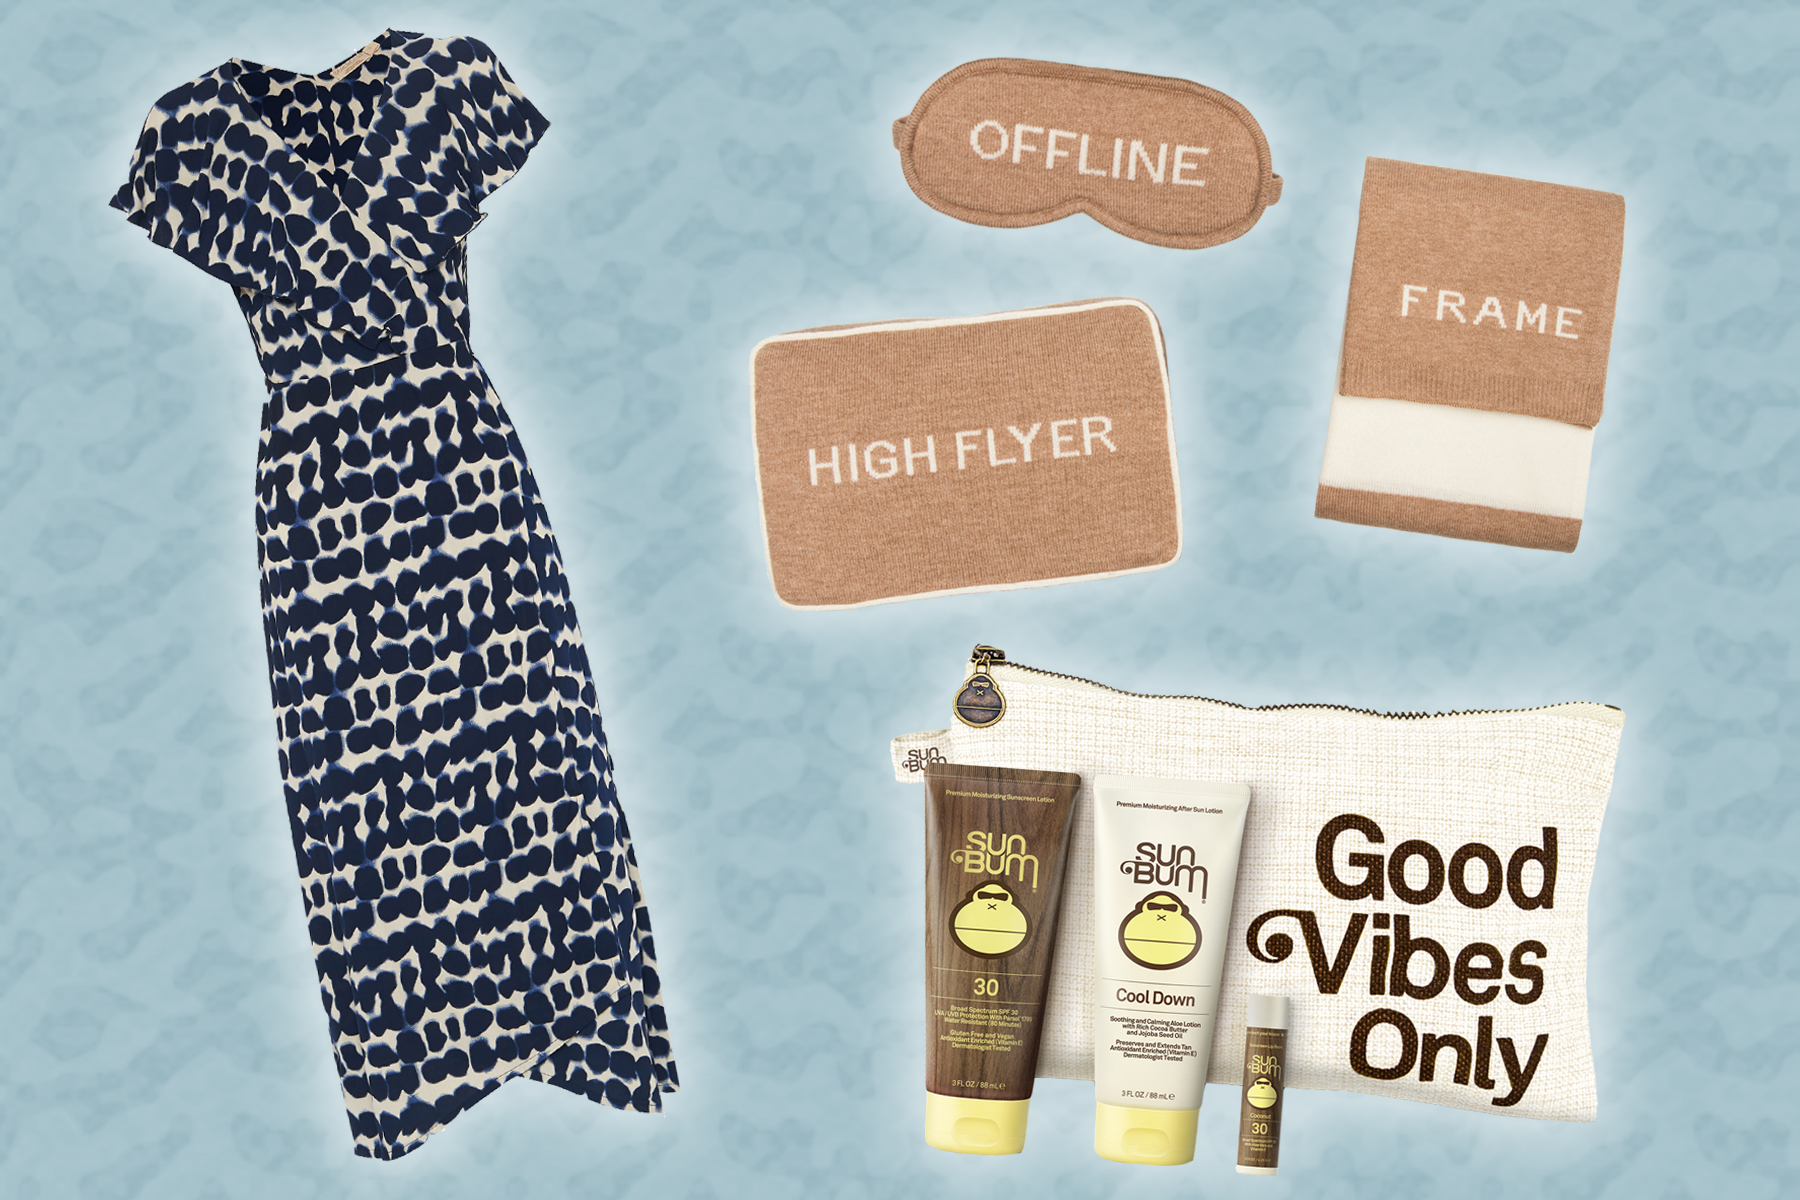 Jet Set: Upgrade Your Travel Style for Your Next Getaway